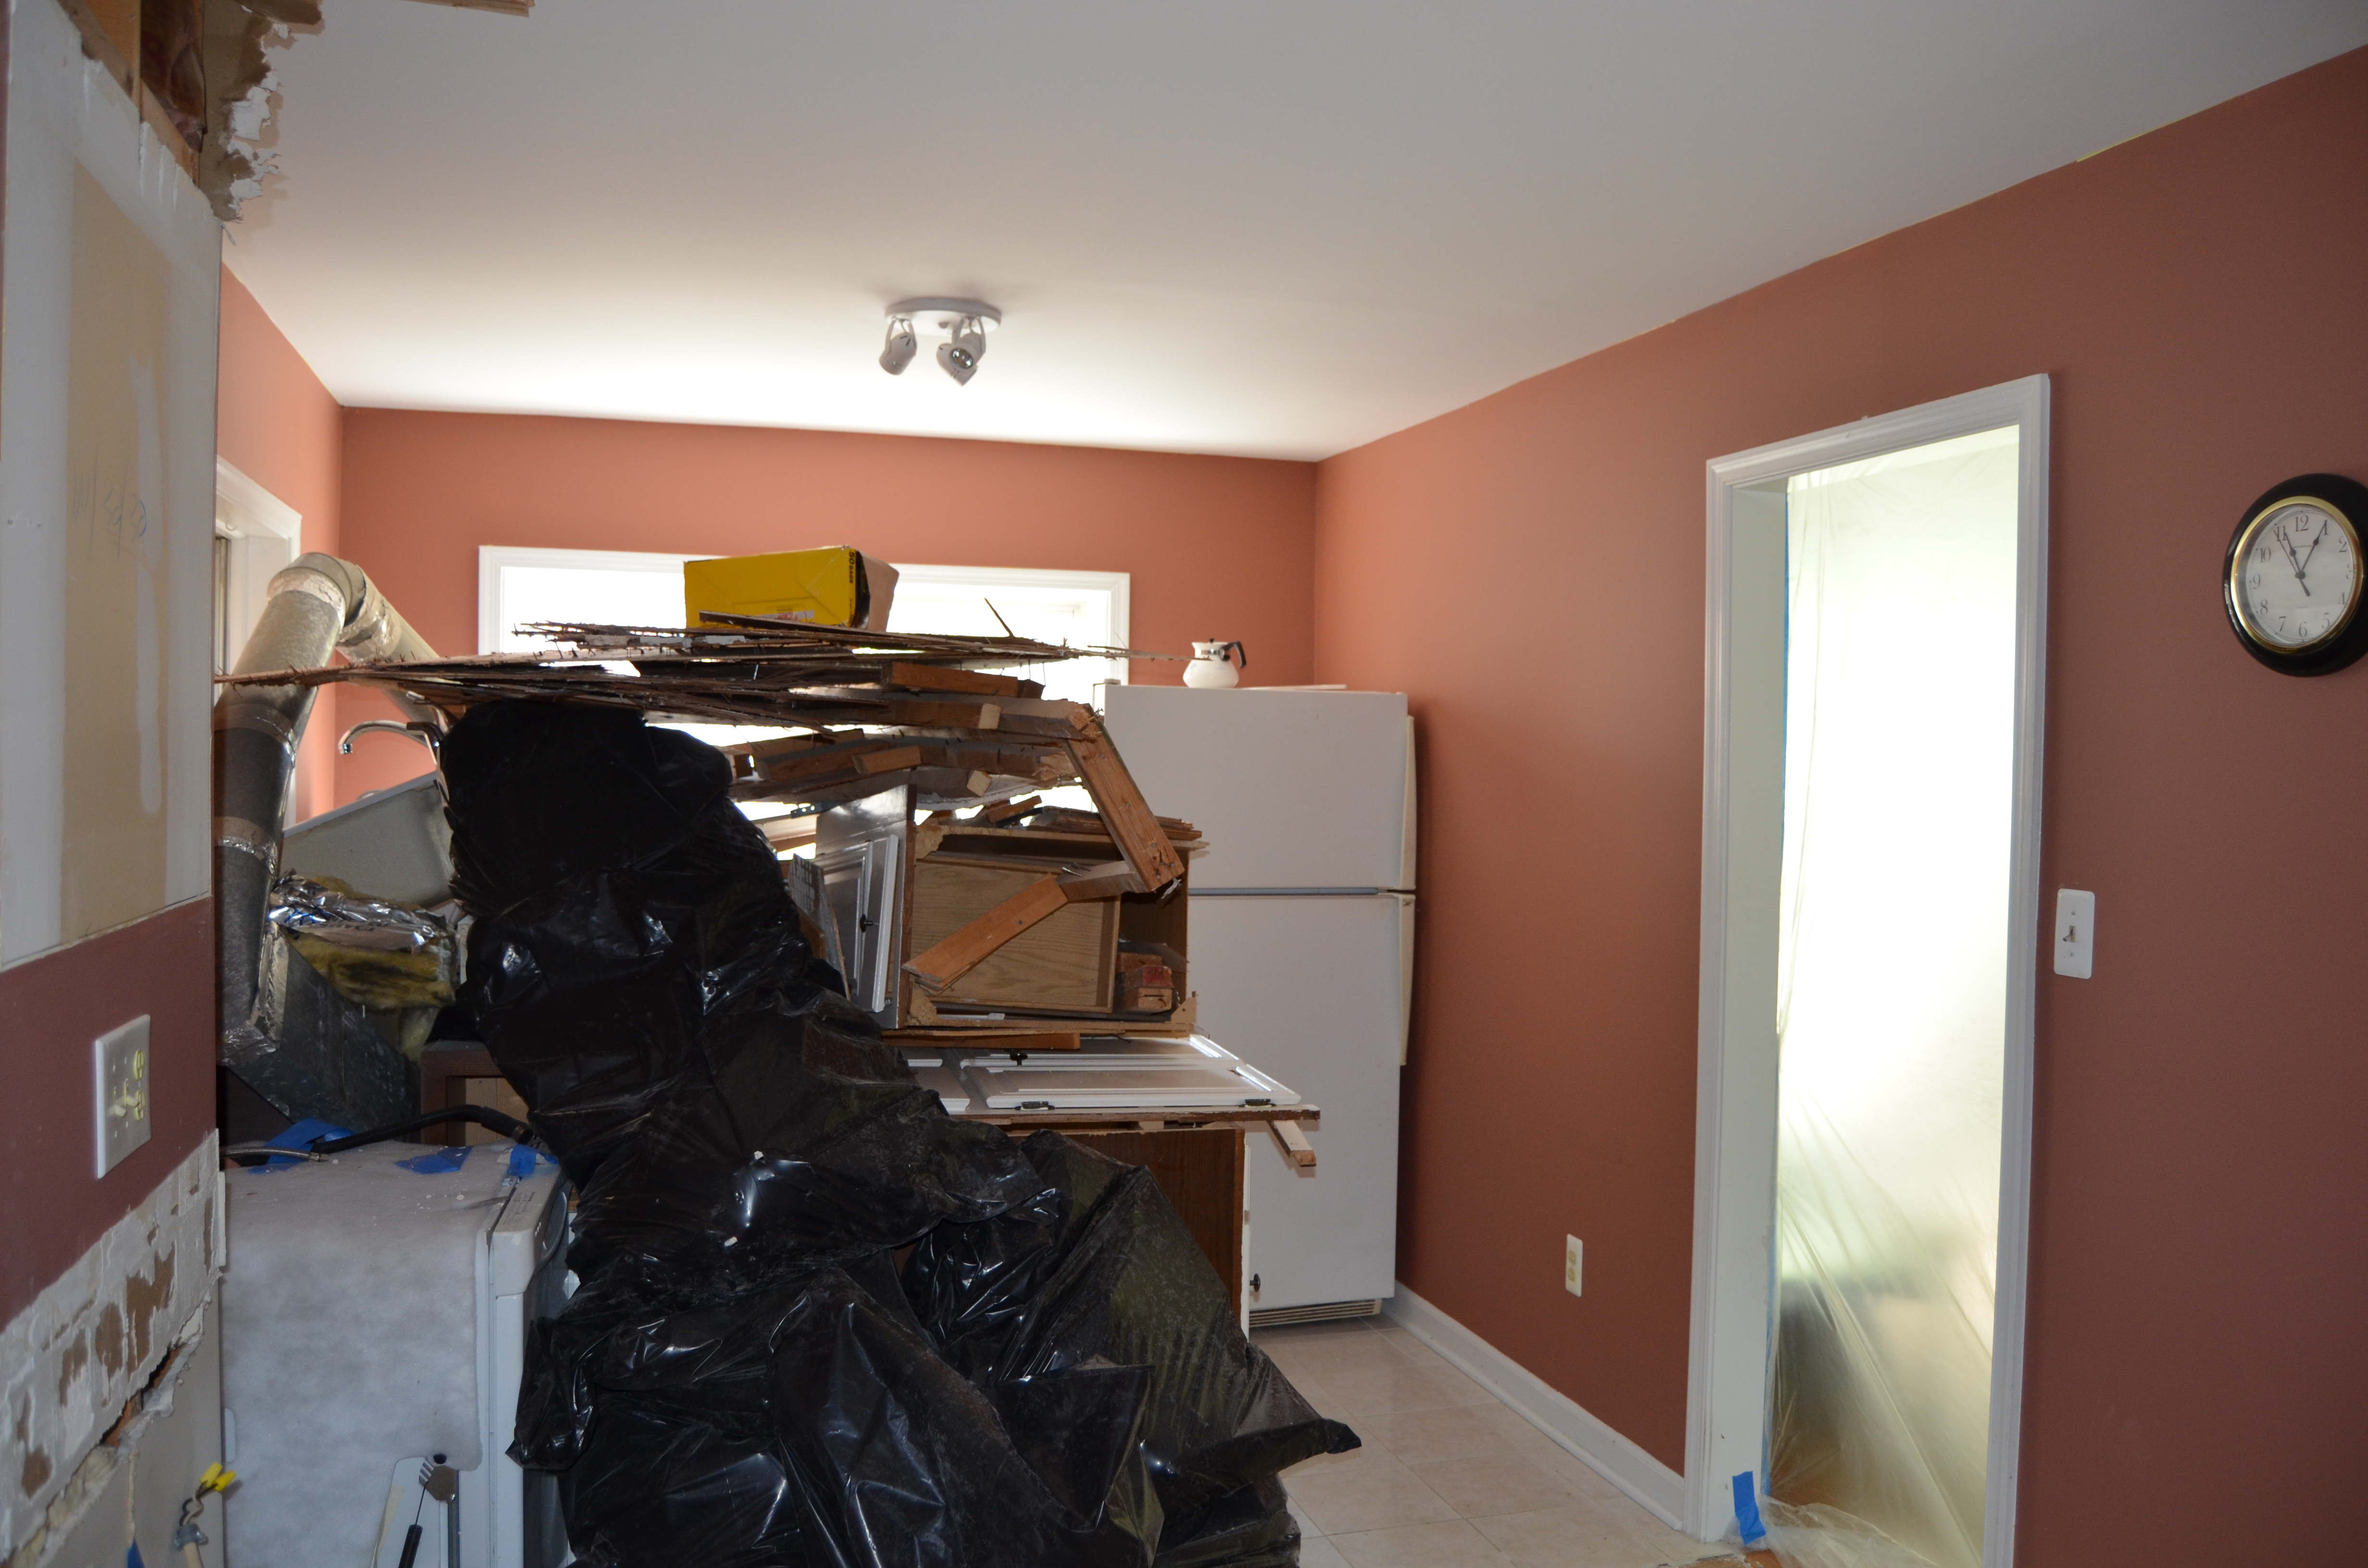 Remodel Kitchen Or Move